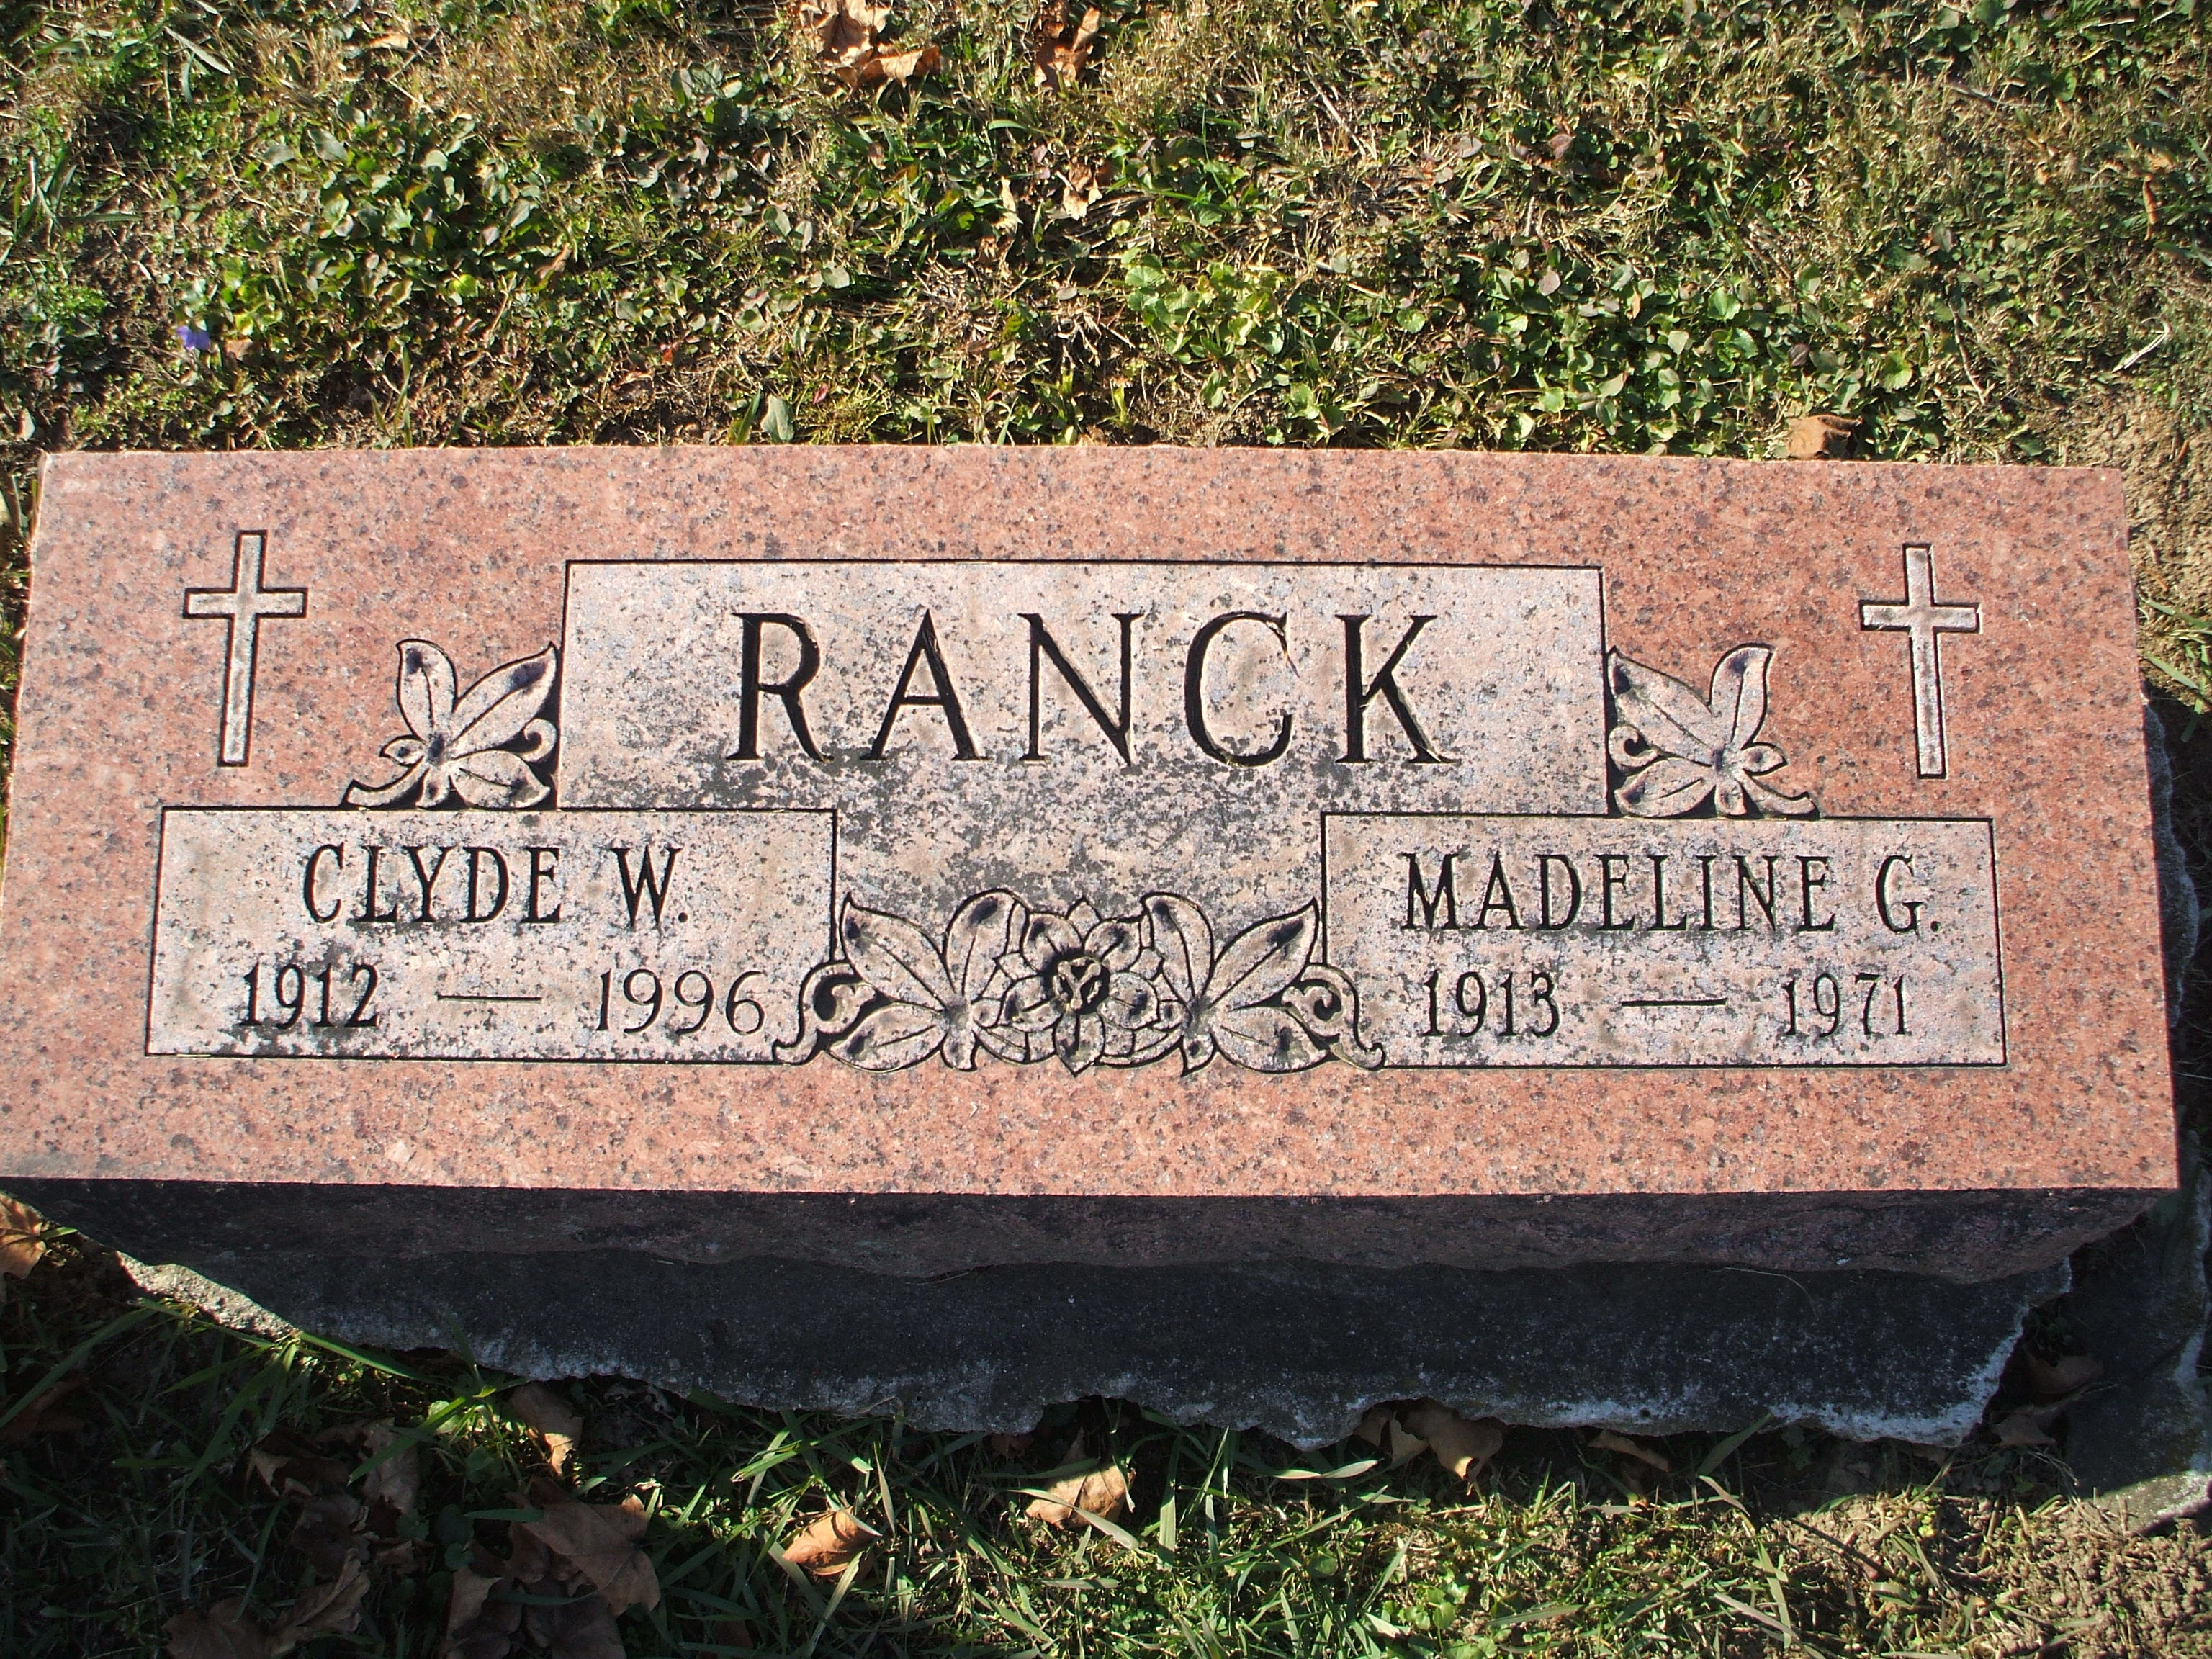 Clyde W Ranck  Tombstone